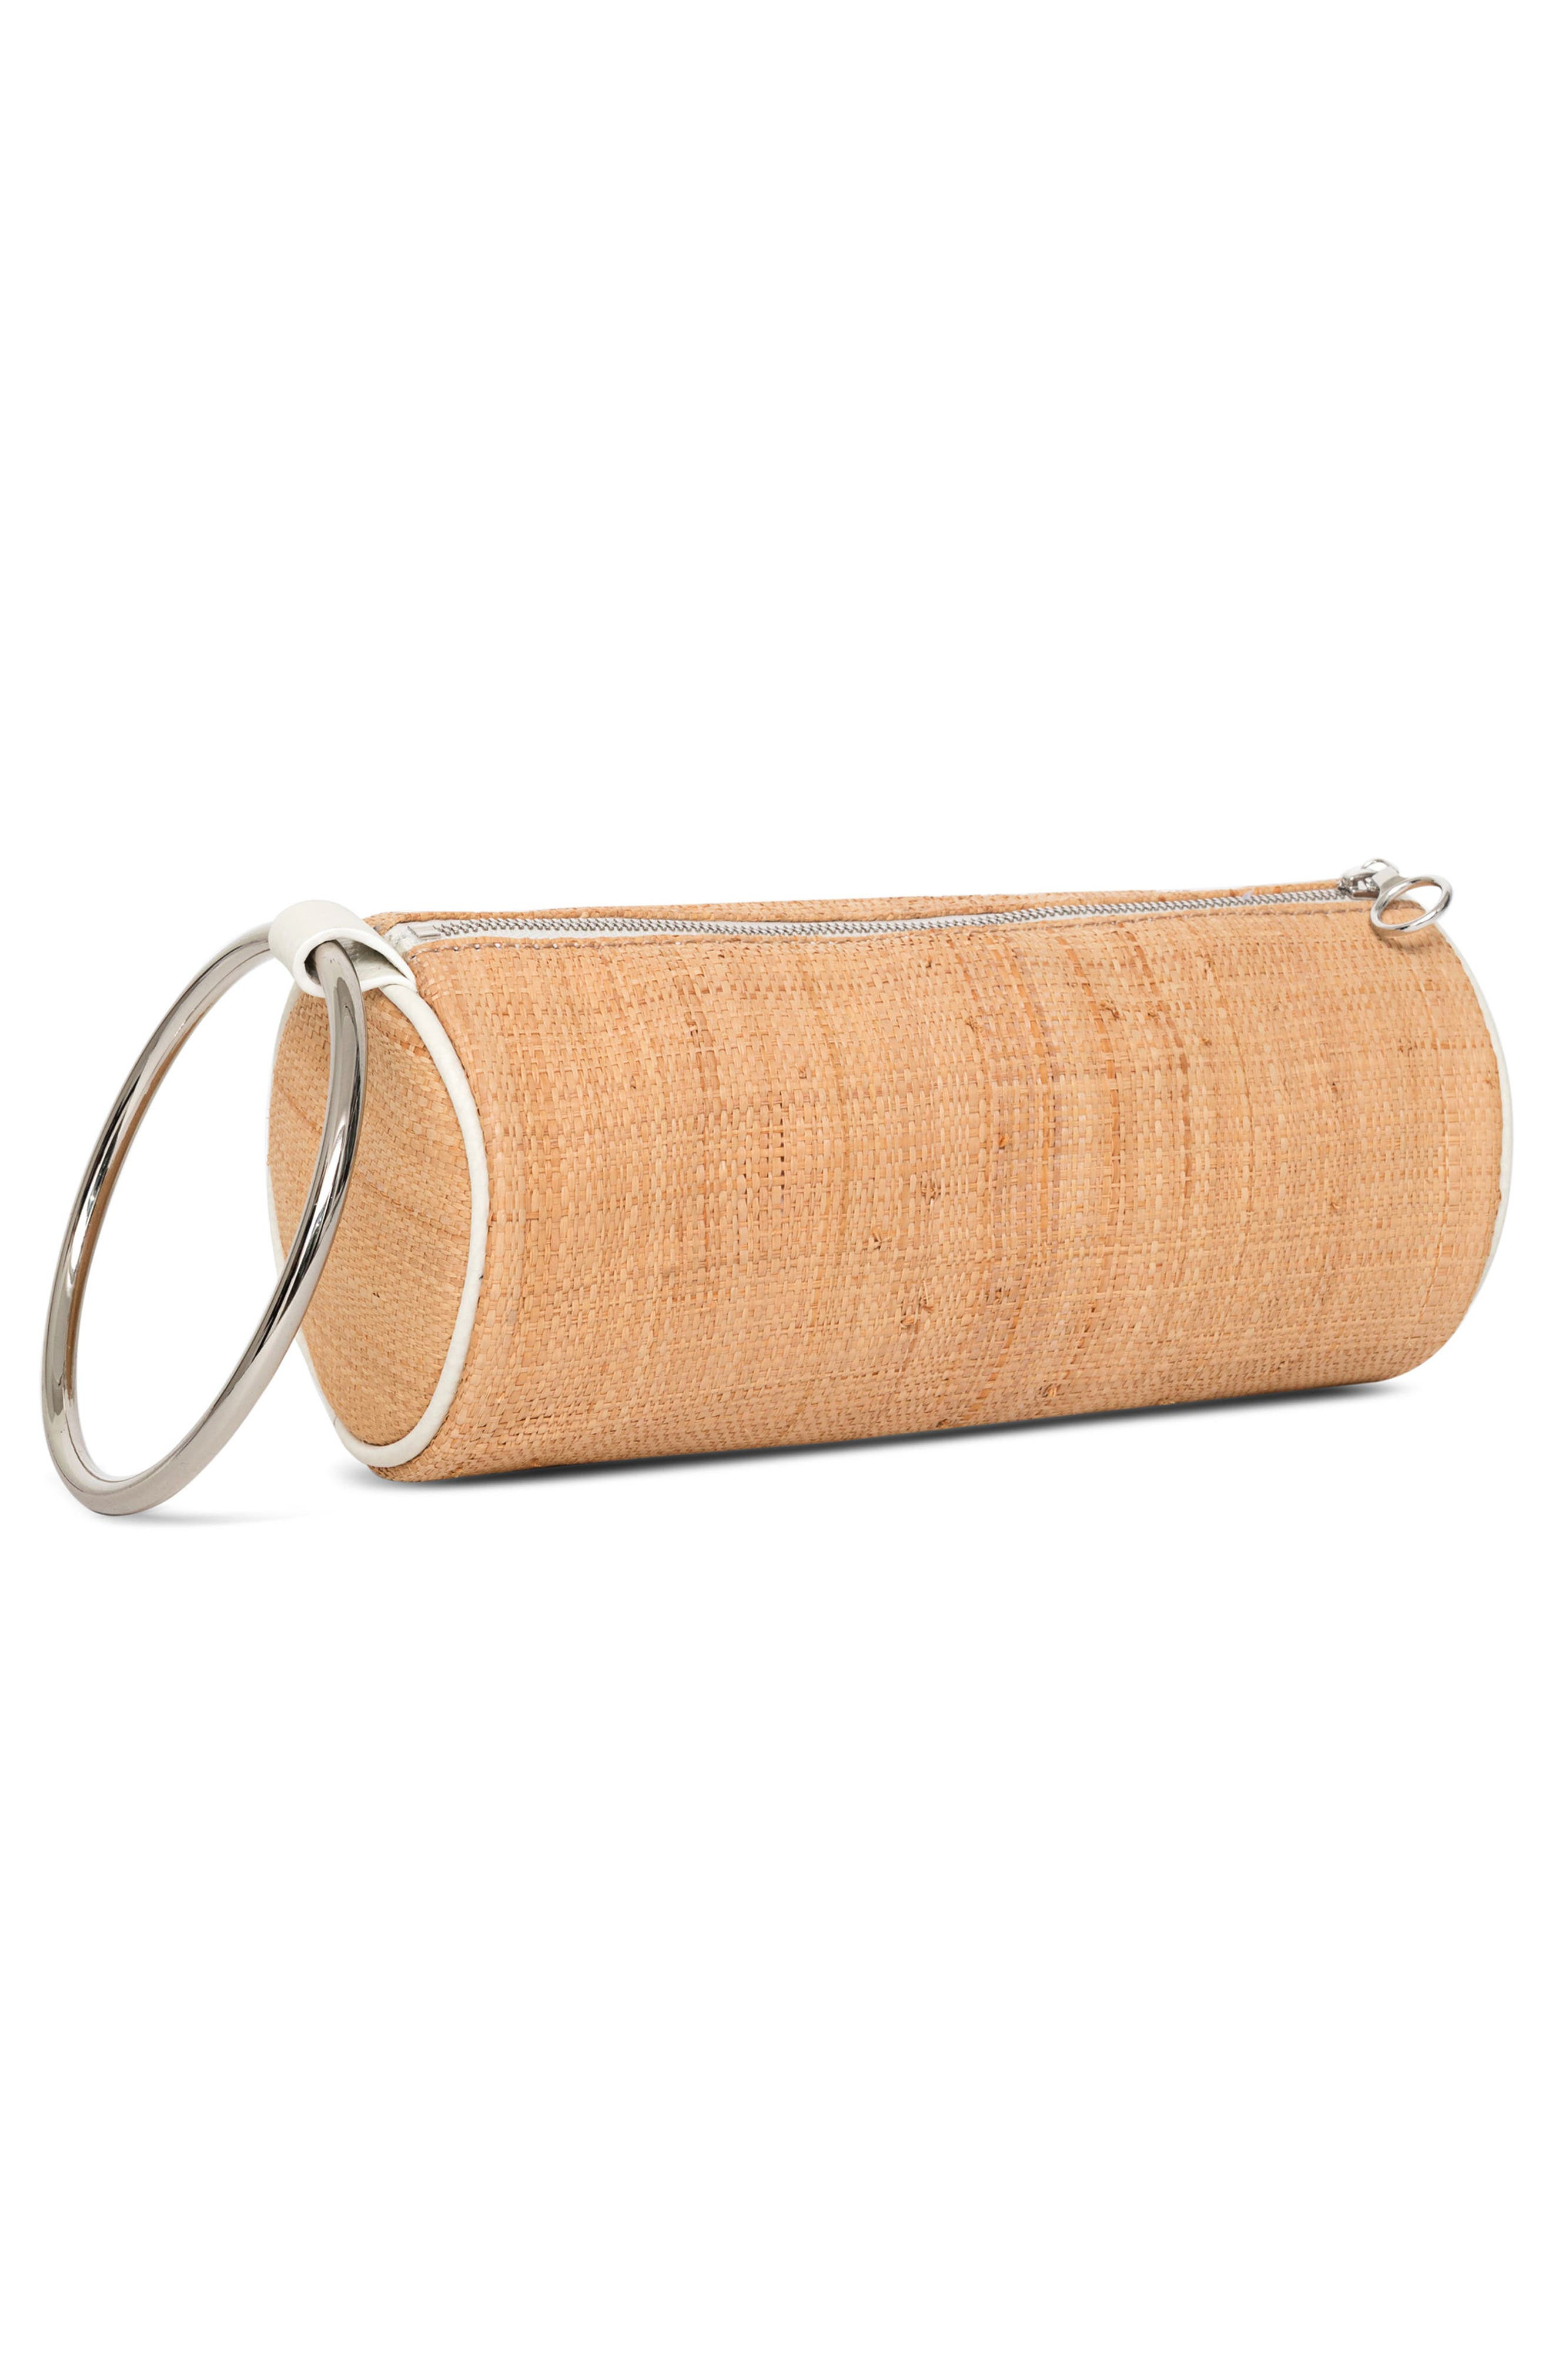 Straw Duffel Wristlet Clutch,                             Alternate thumbnail 3, color,                             250